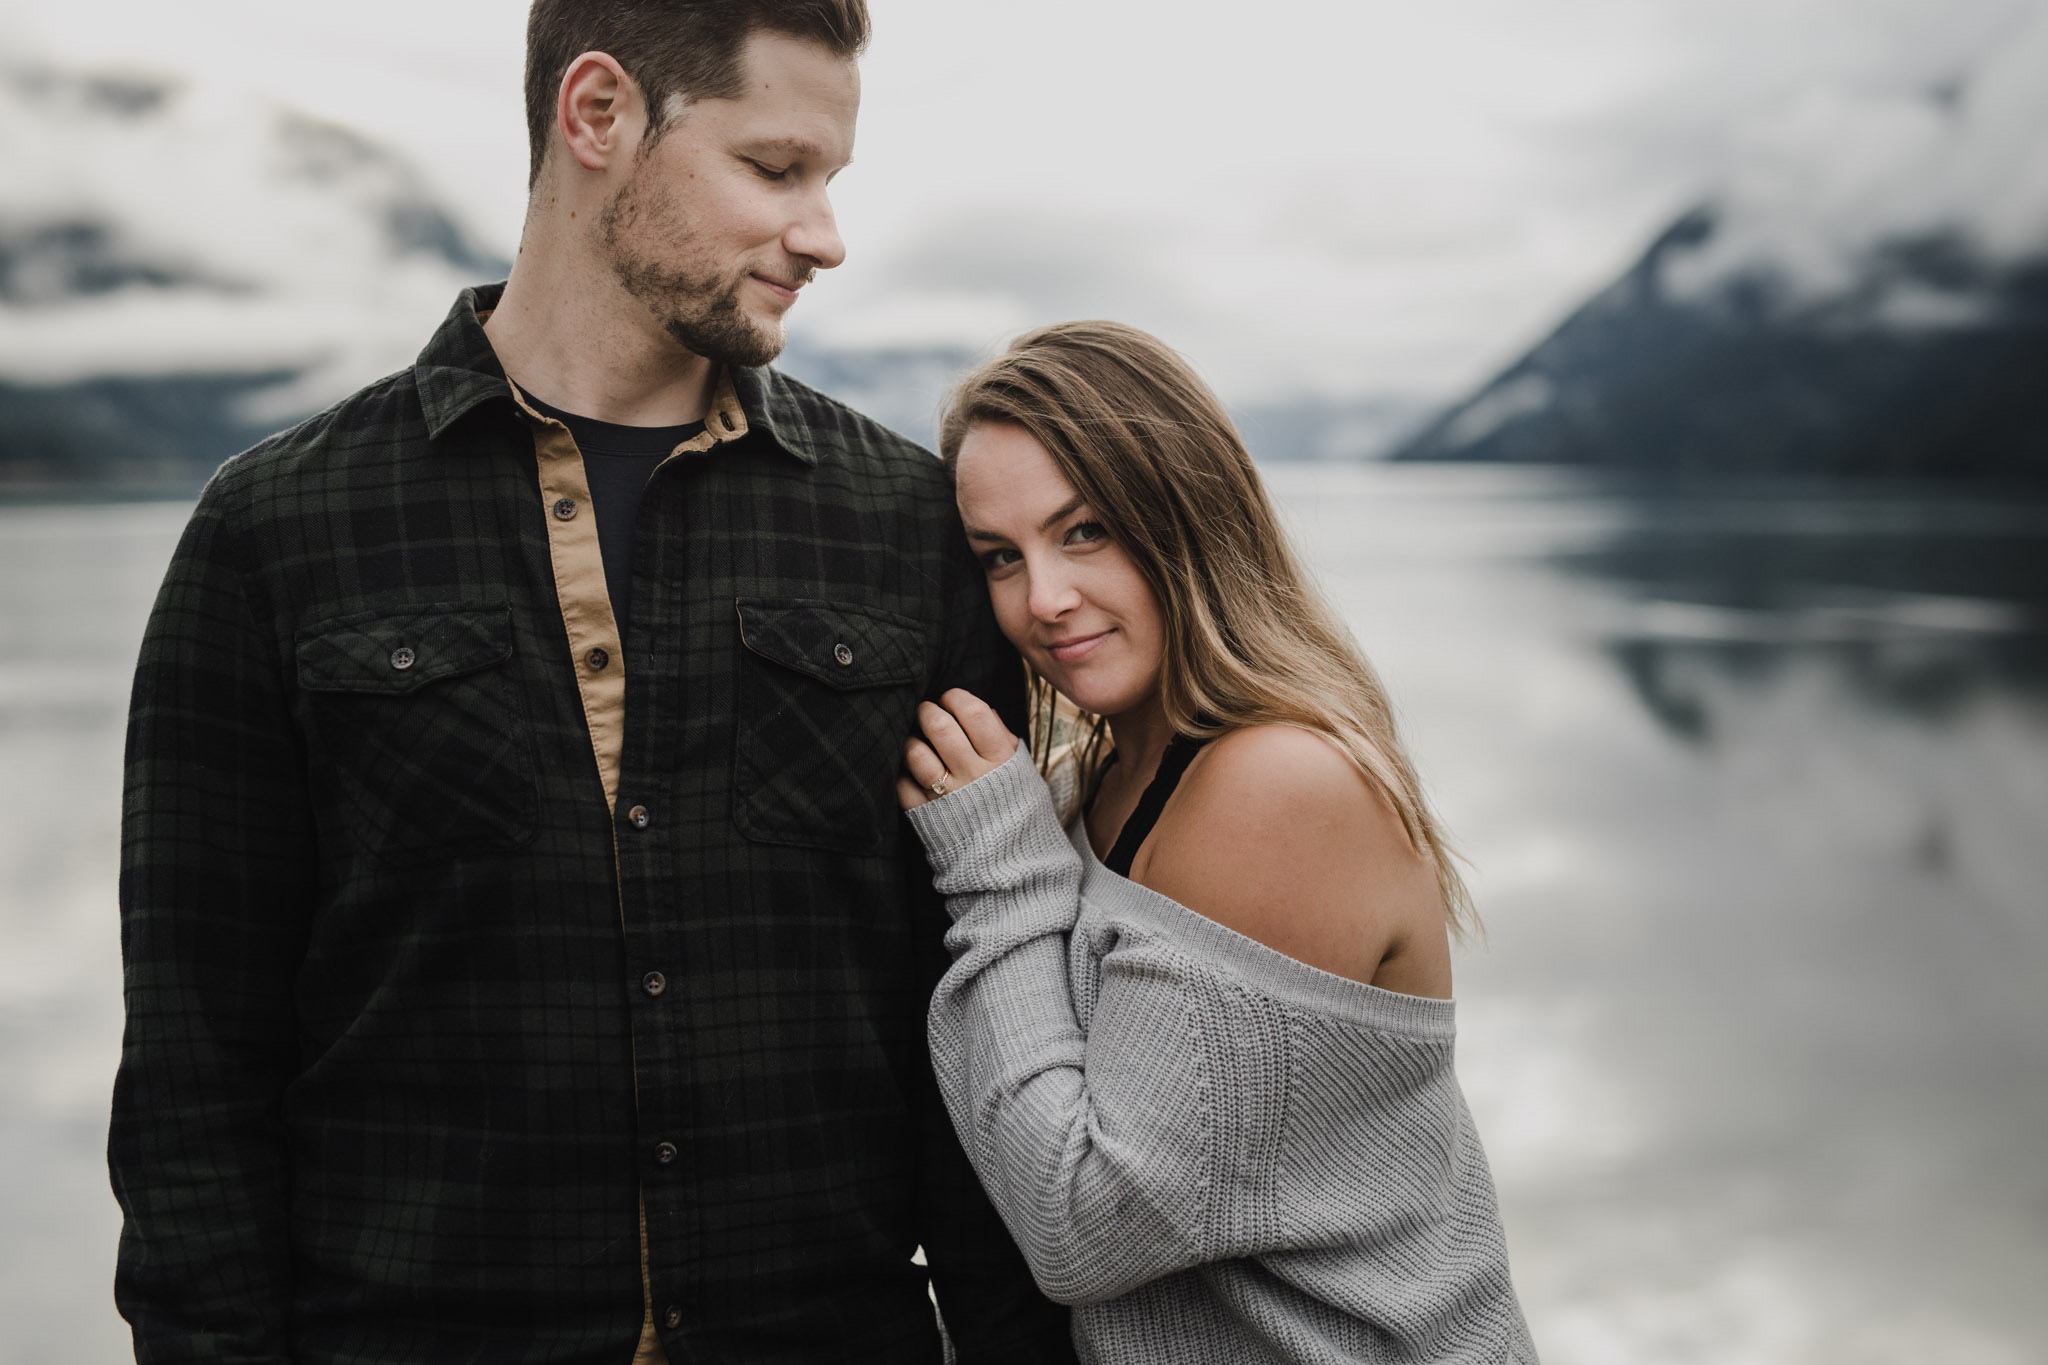 BC Mountain Top Engagement Photographer - sweet smiles